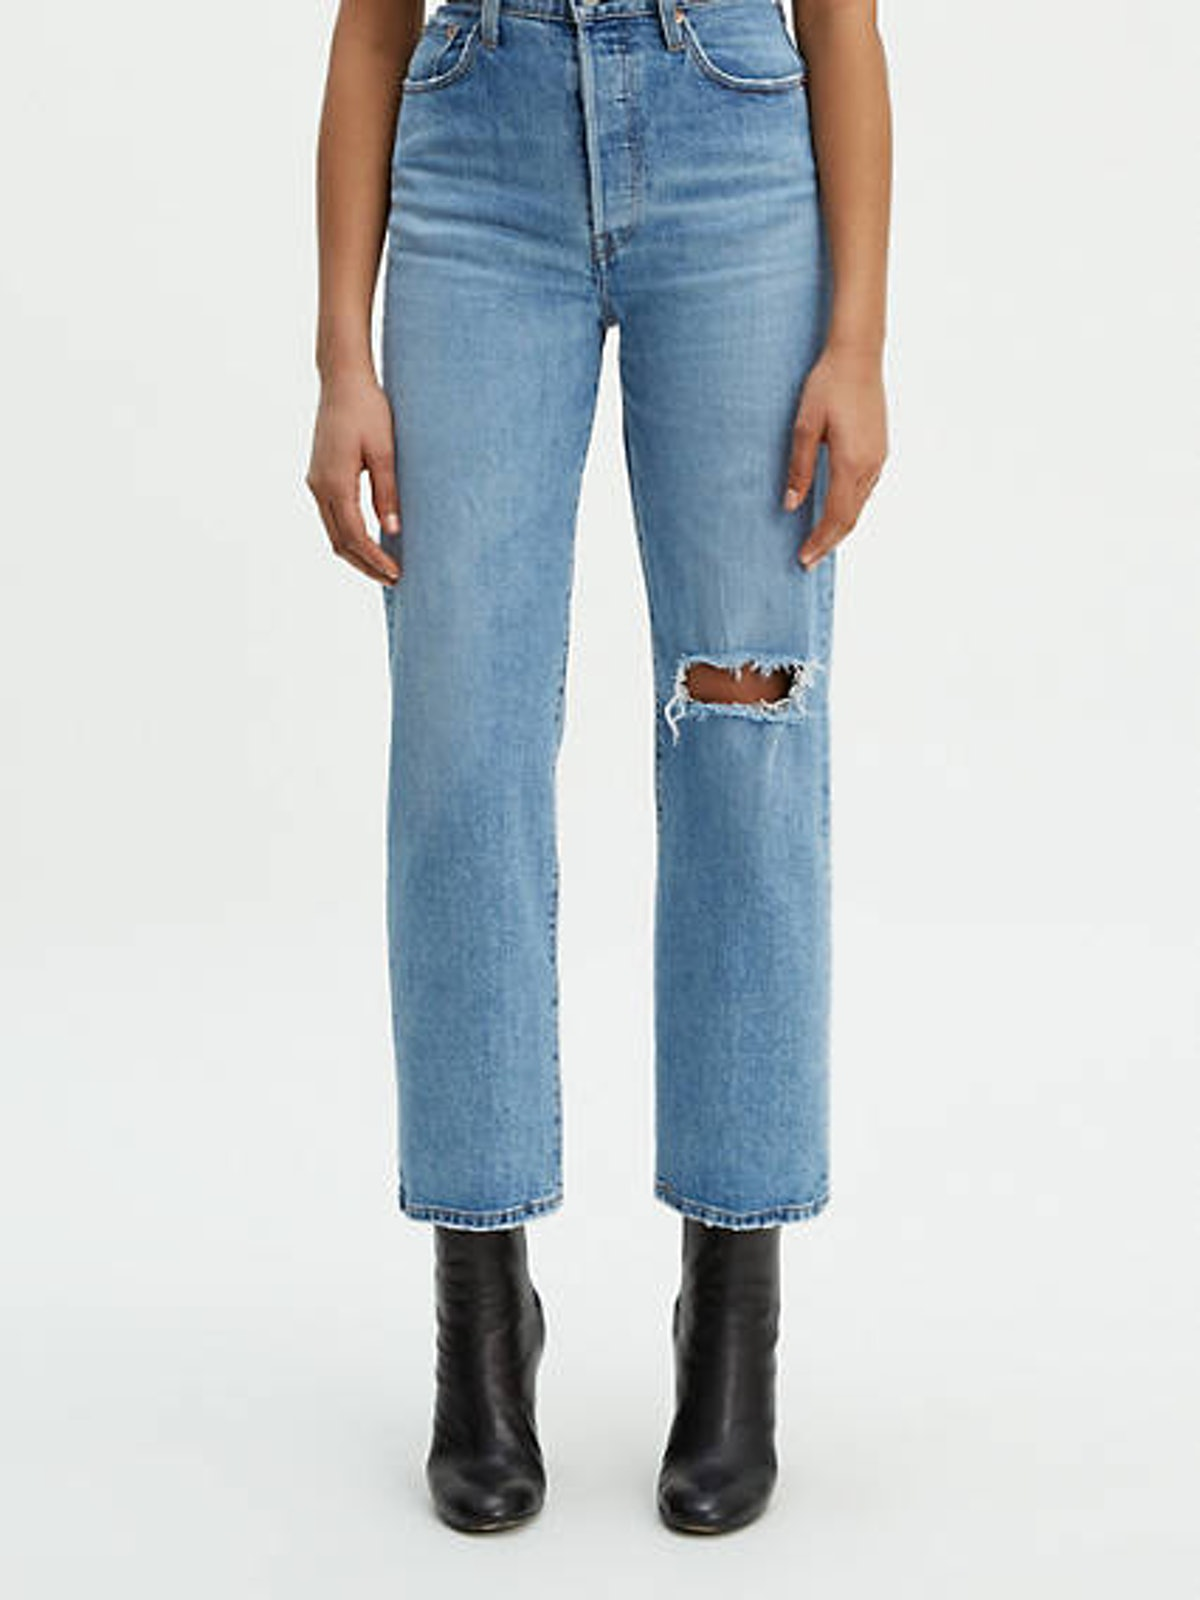 Ribcage Straight Jeans in Haters Gonna Hate